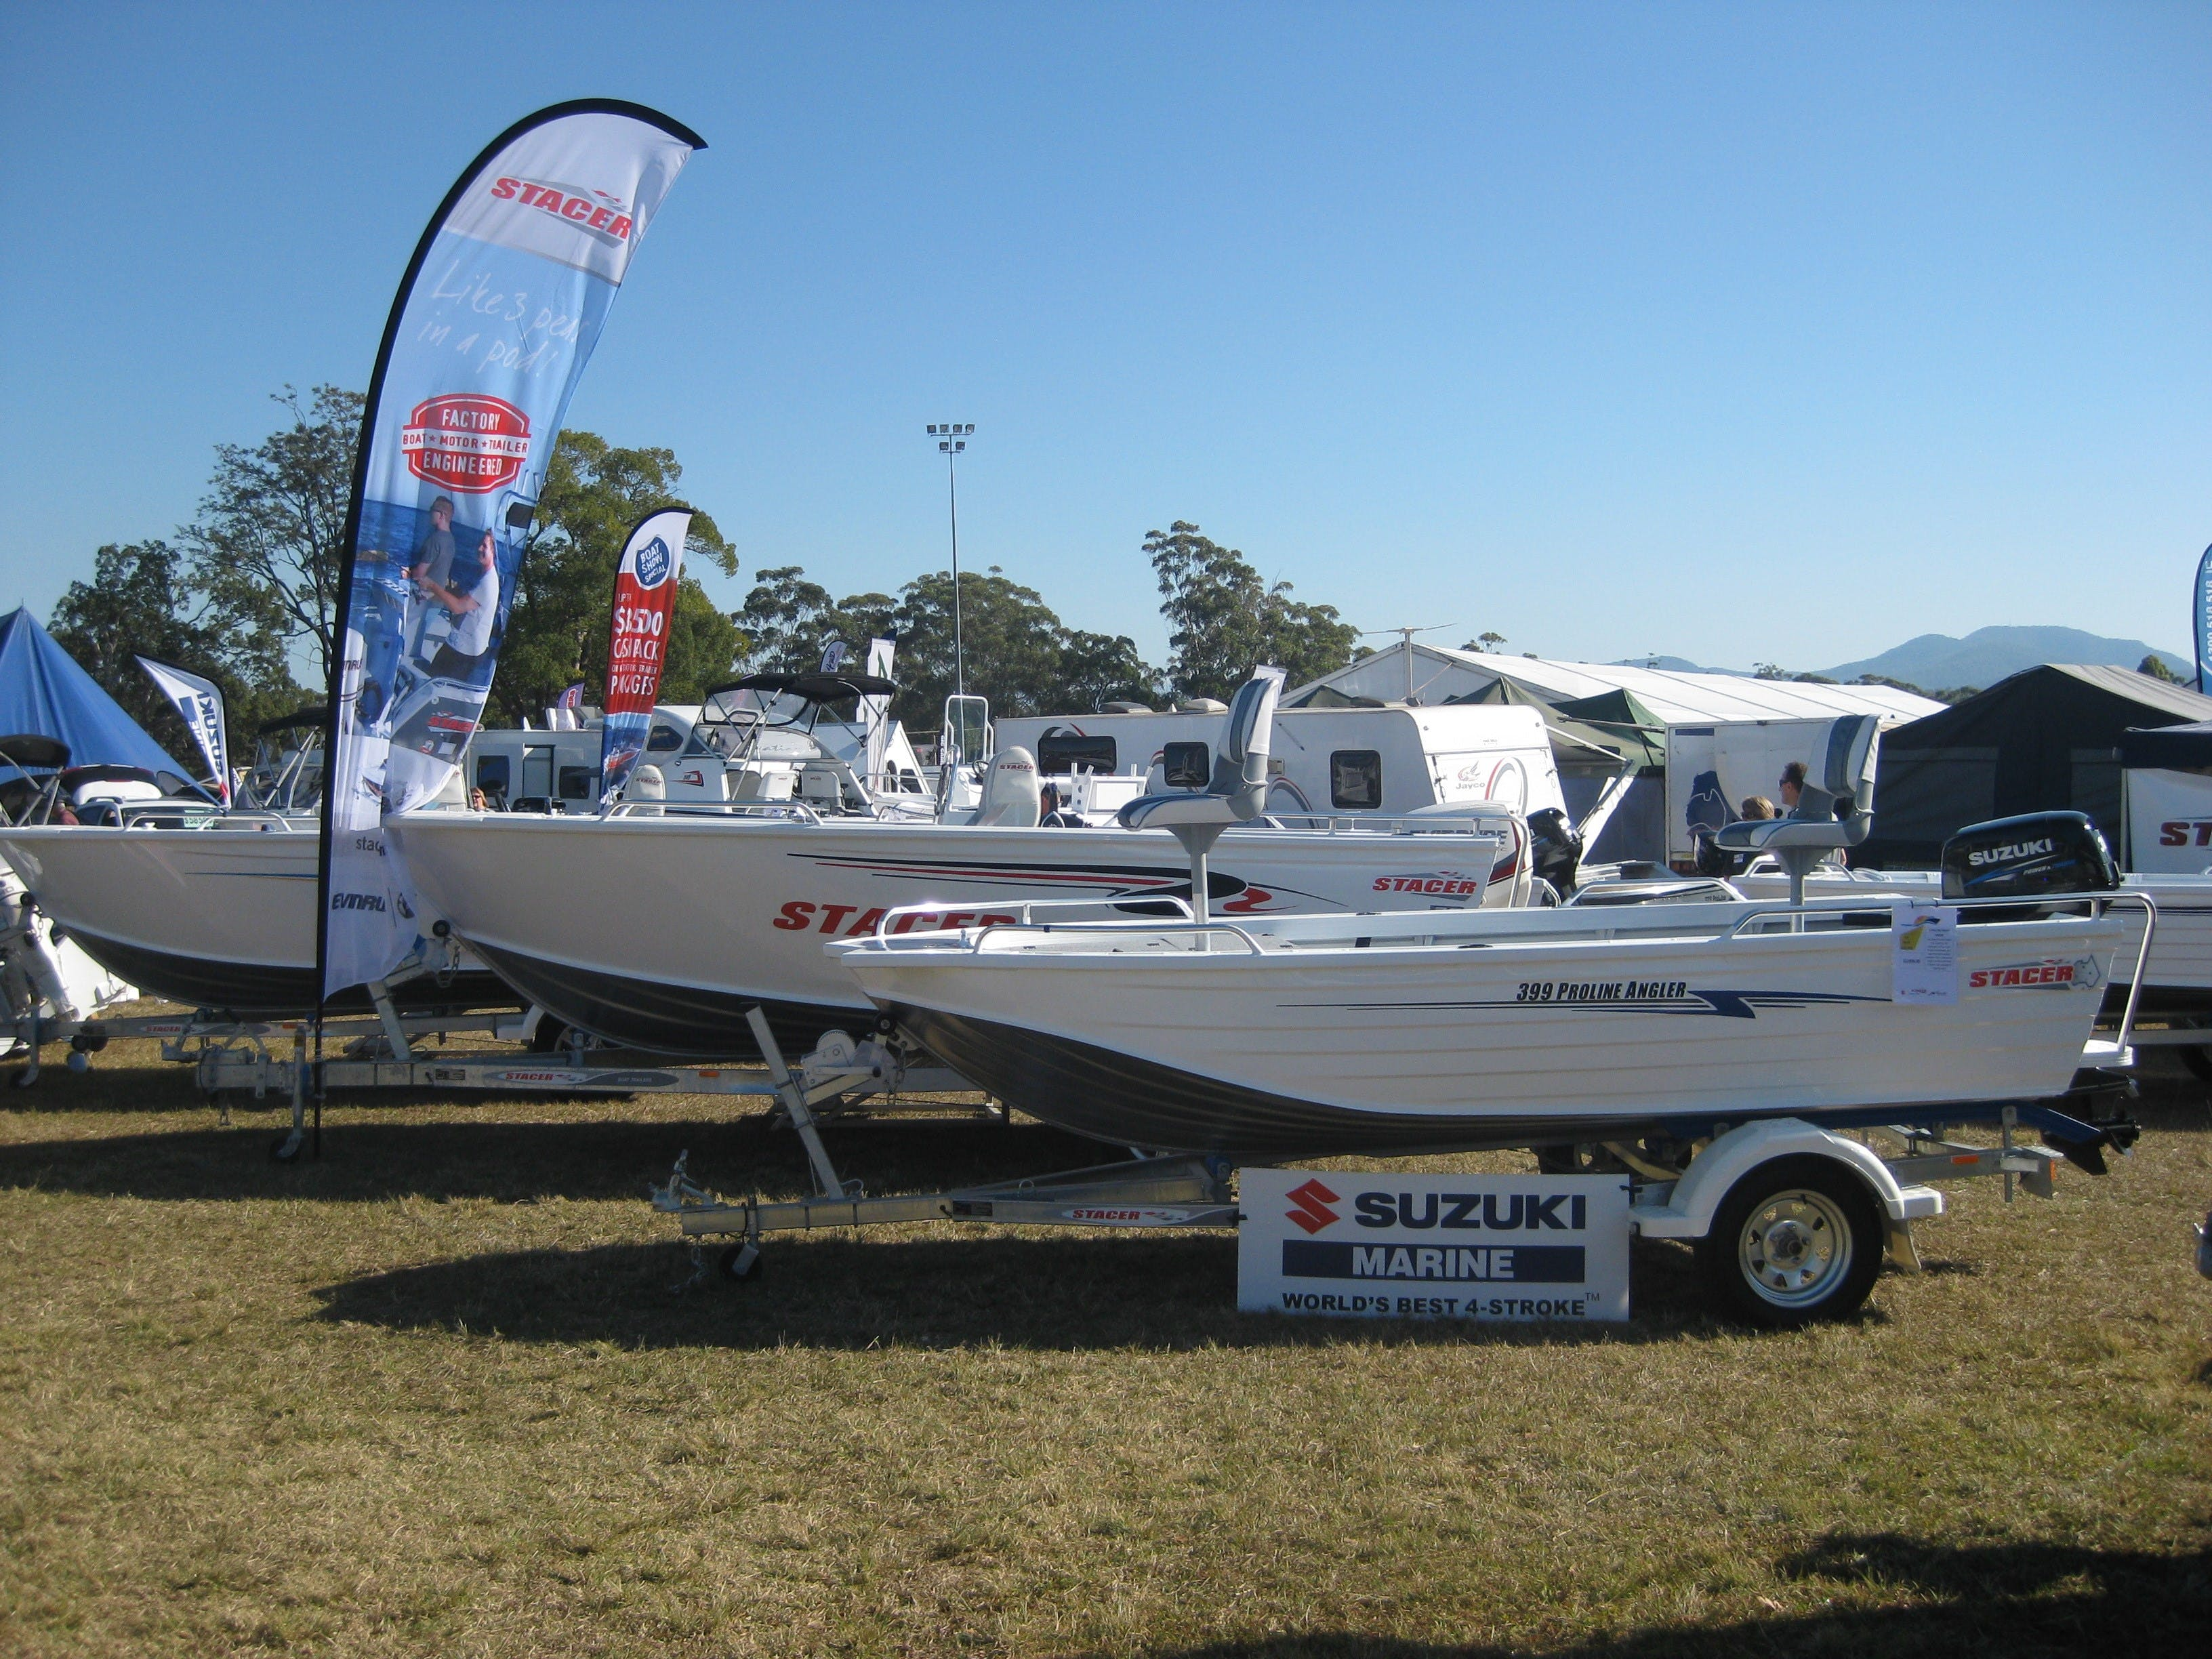 Mid North Coast Caravan Camping 4WD Fish and Boat Show - Palm Beach Accommodation